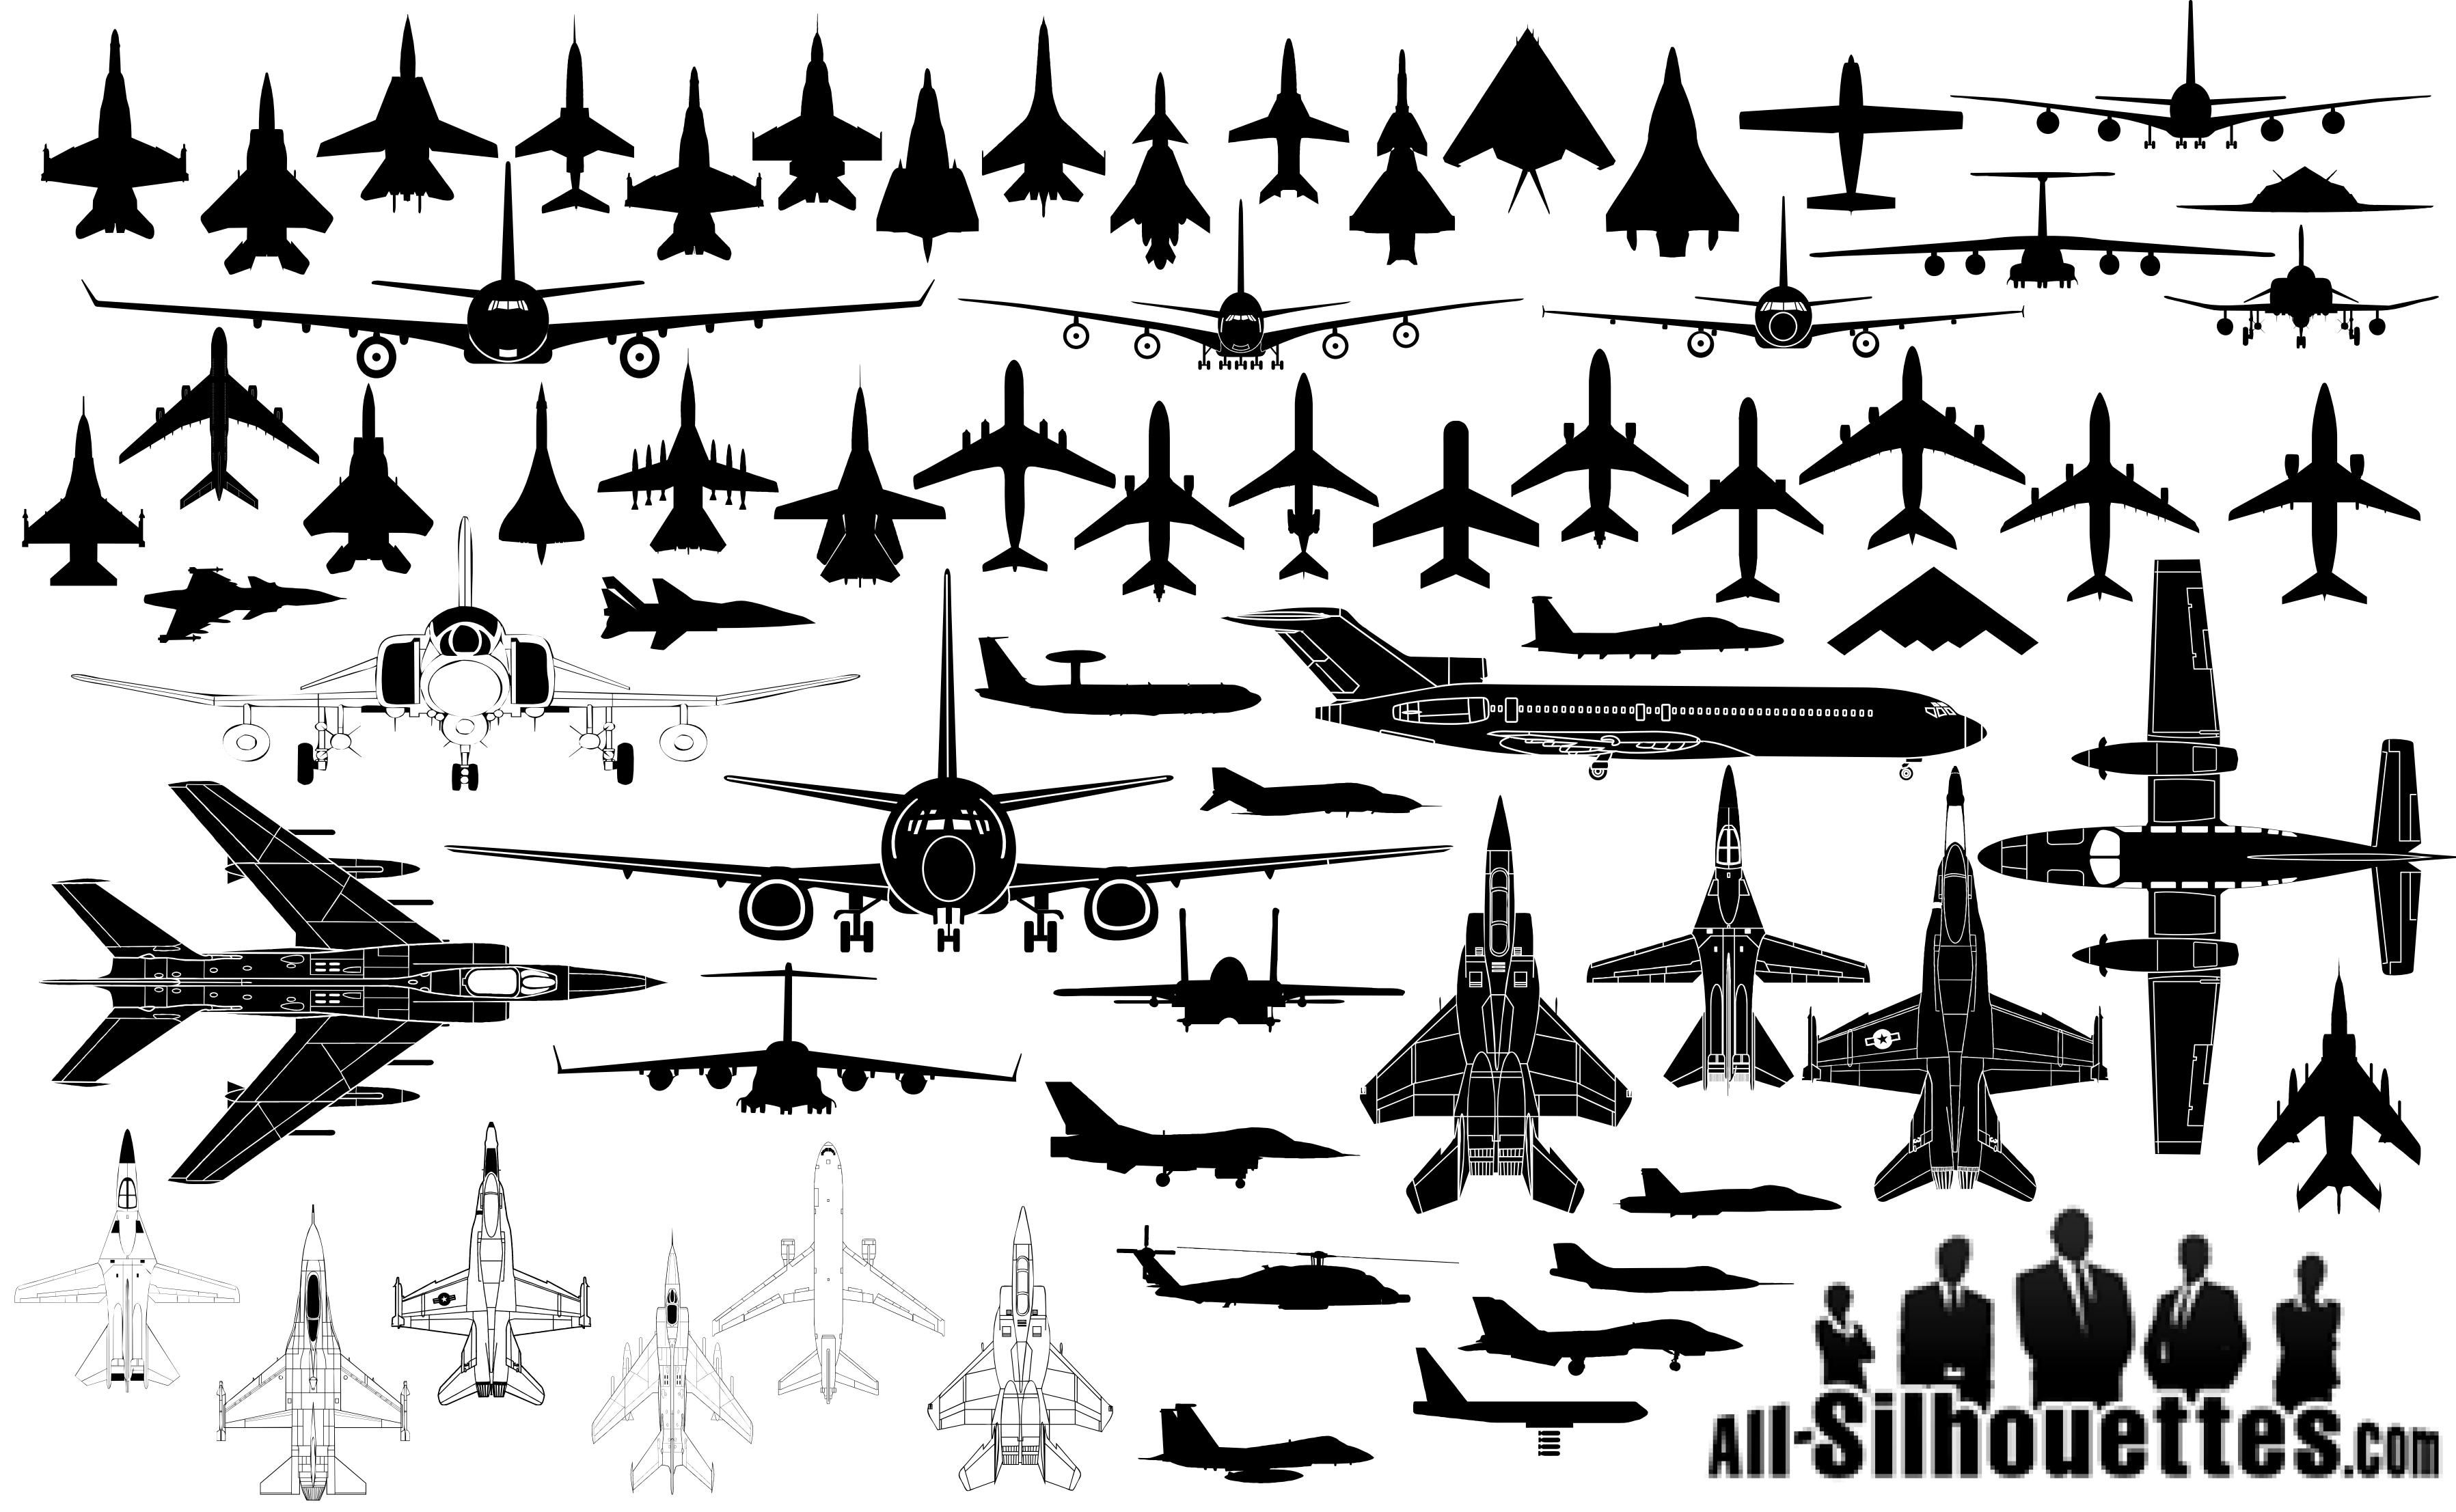 50 Airplane Silhouettes пхот Pinterest Airplanes